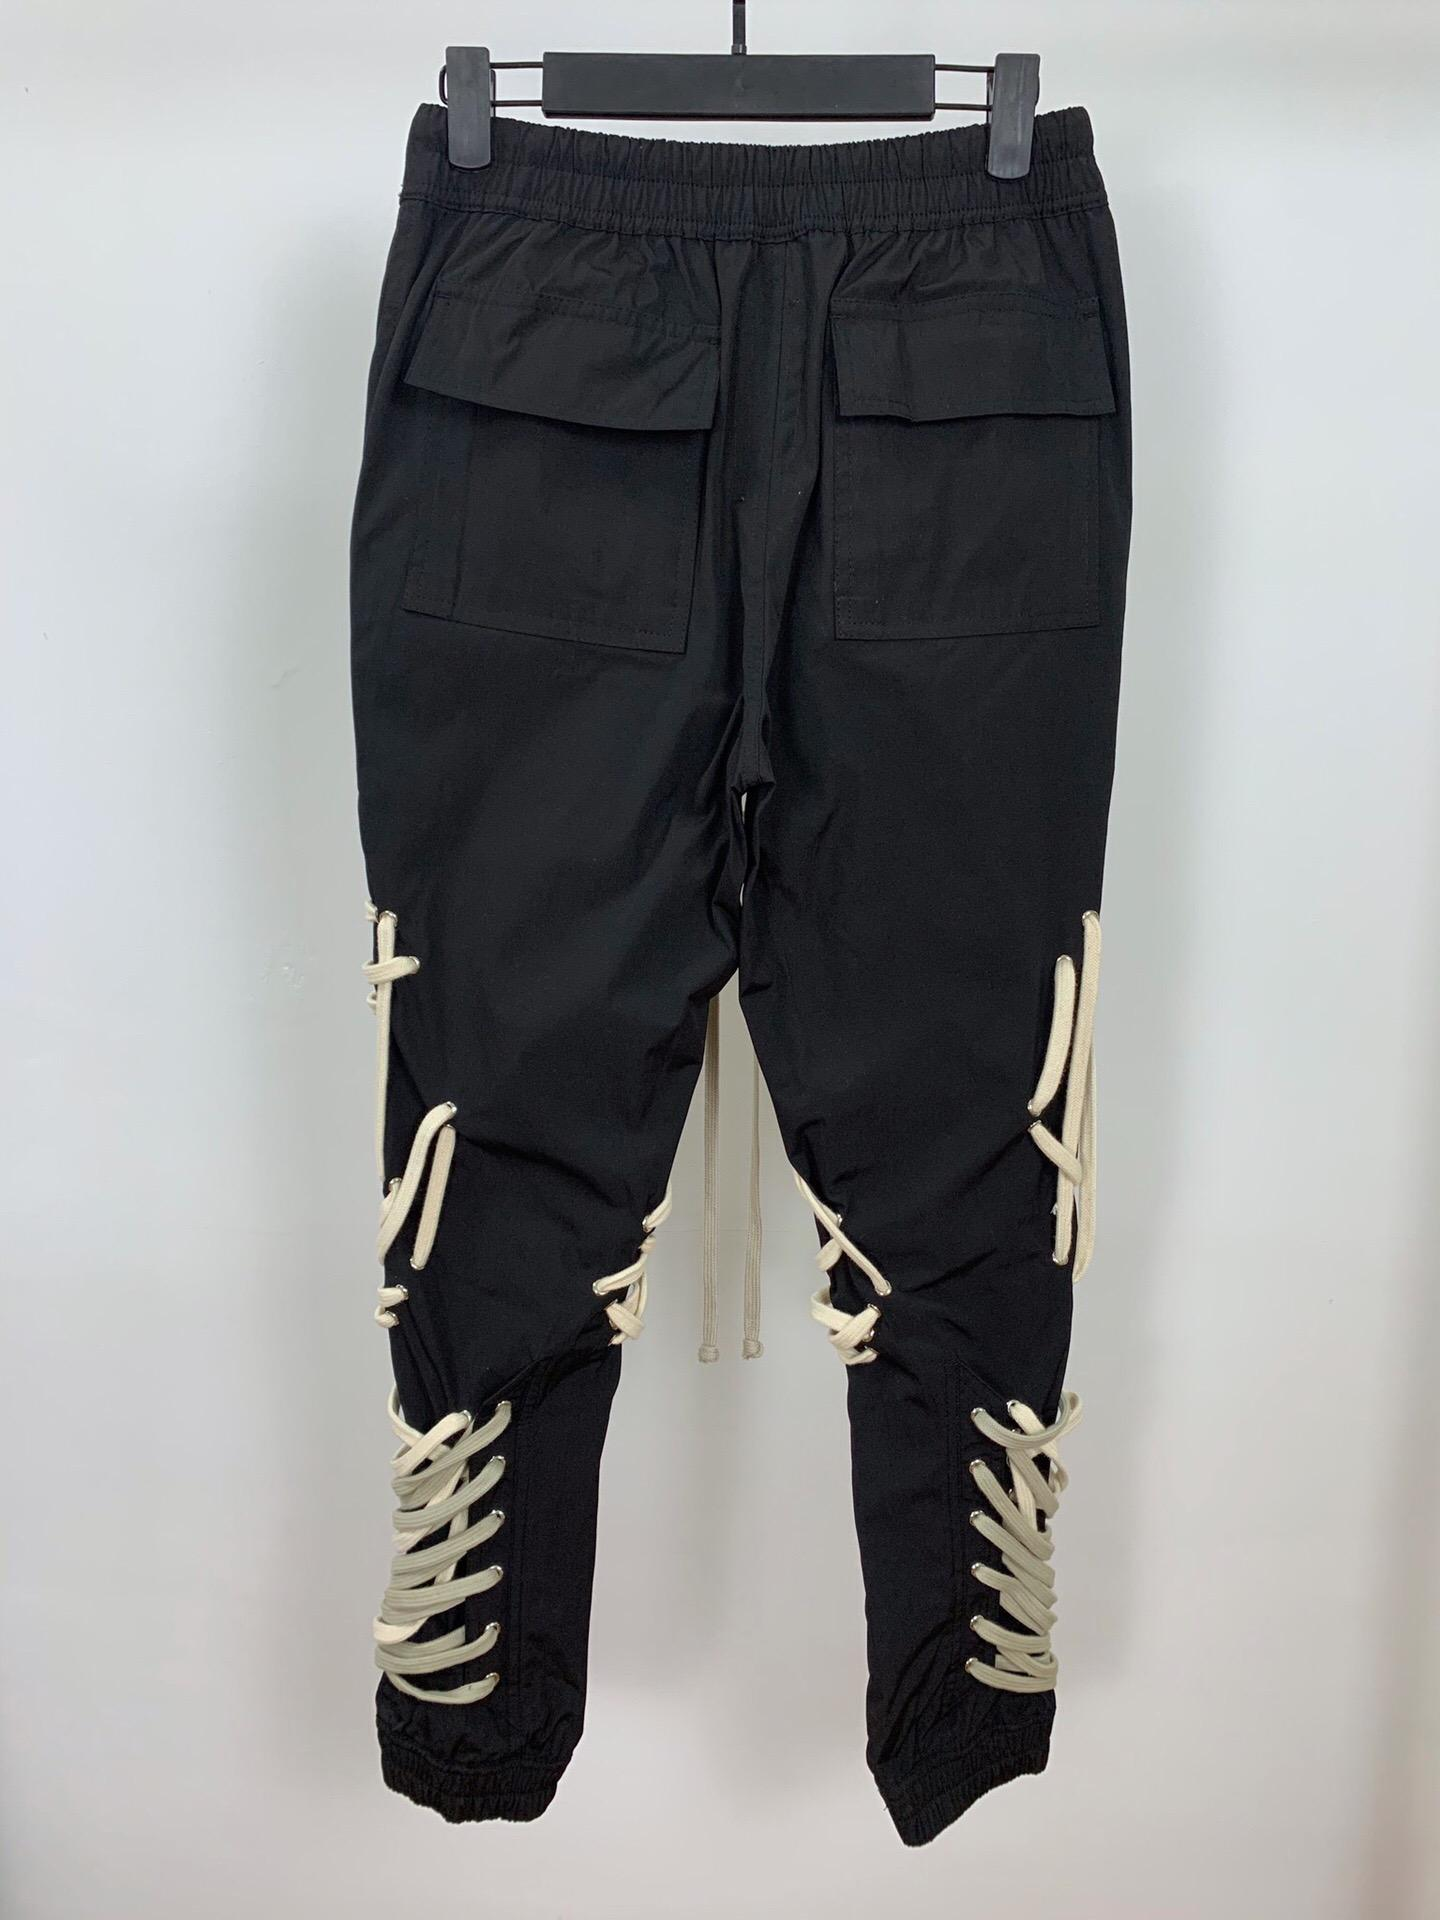 2020 fall Spring New Fashion Trousers Male Pure hand cotton rope loom car trousers Elastic Trousers Male Man jeans